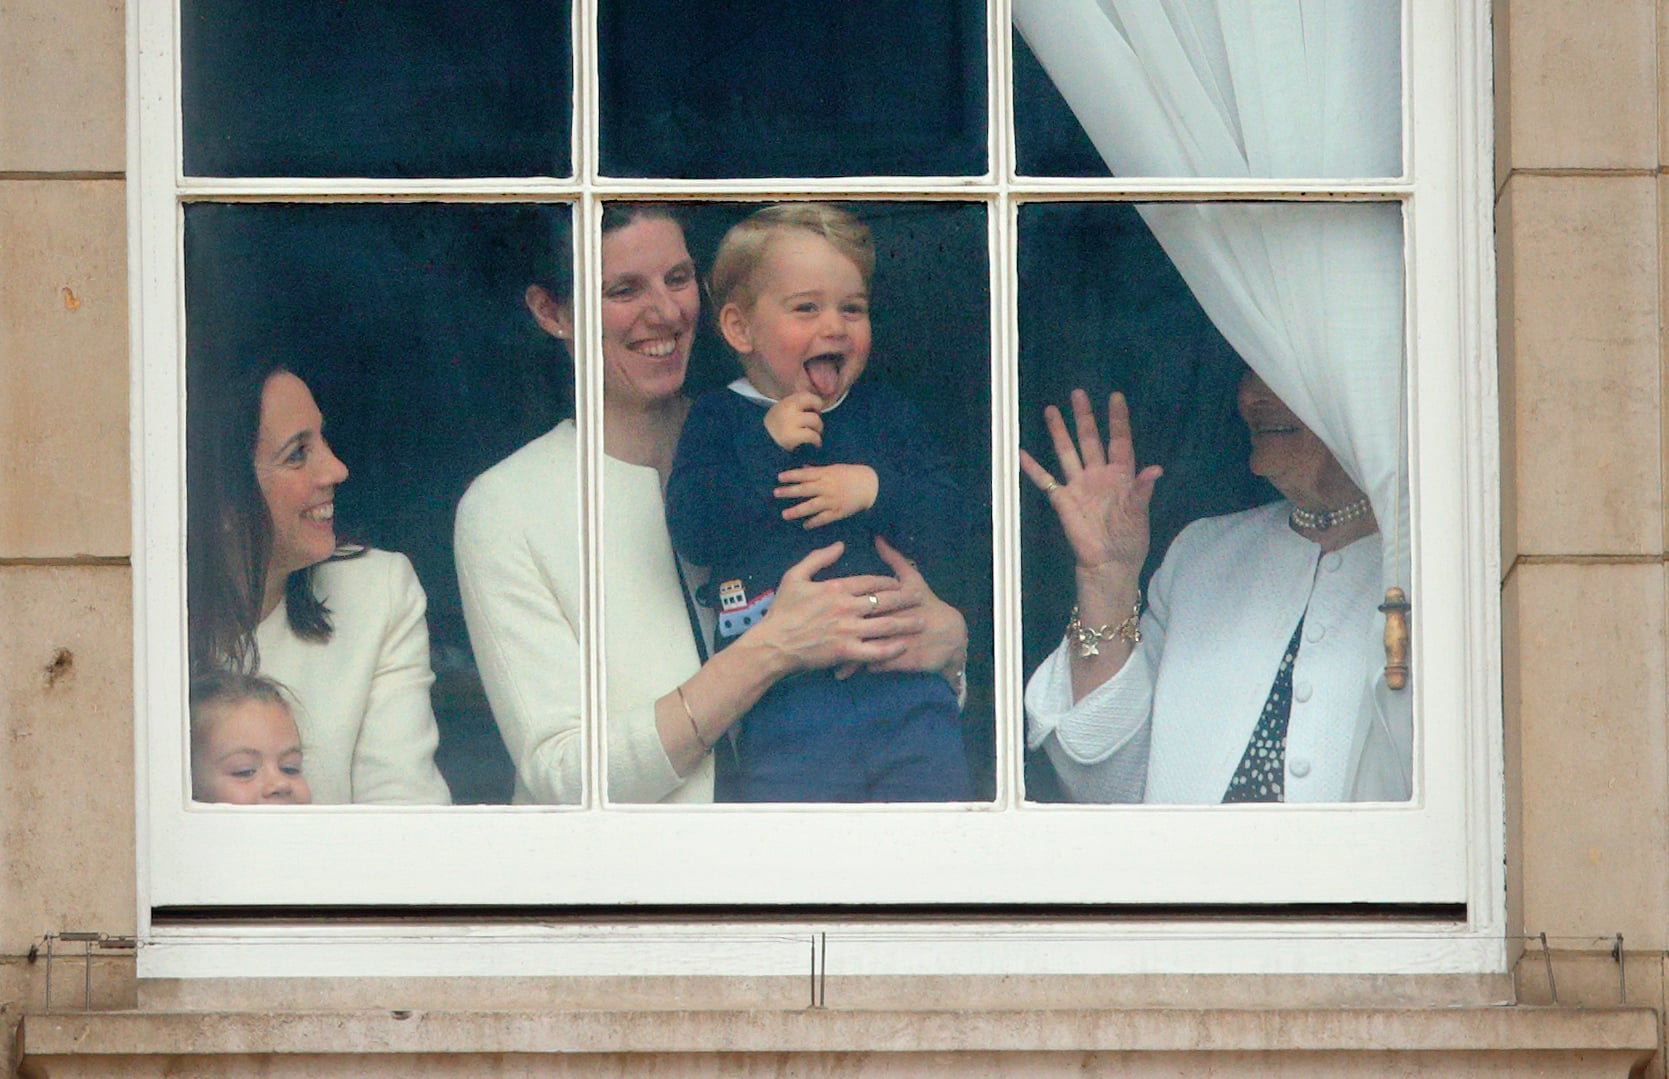 LONDON, UNITED KINGDOM - JUNE 13: (EMBARGOED FOR PUBLICATION IN UK NEWSPAPERS UNTIL 48 HOURS AFTER CREATE DATE AND TIME) Prince George of Cambridge being held up at a window of Buckingham Palace by his nanny  Maria Teresa Turrion Borrallo to watch Trooping the Colour on June 13, 2015 in London, England. The ceremony is Queen Elizabeth II's annual birthday parade and dates back to the time of Charles II in the 17th Century, when the Colours of a regiment were used as a rallying point in battle. (Photo by Max Mumby/Indigo/Getty Images)